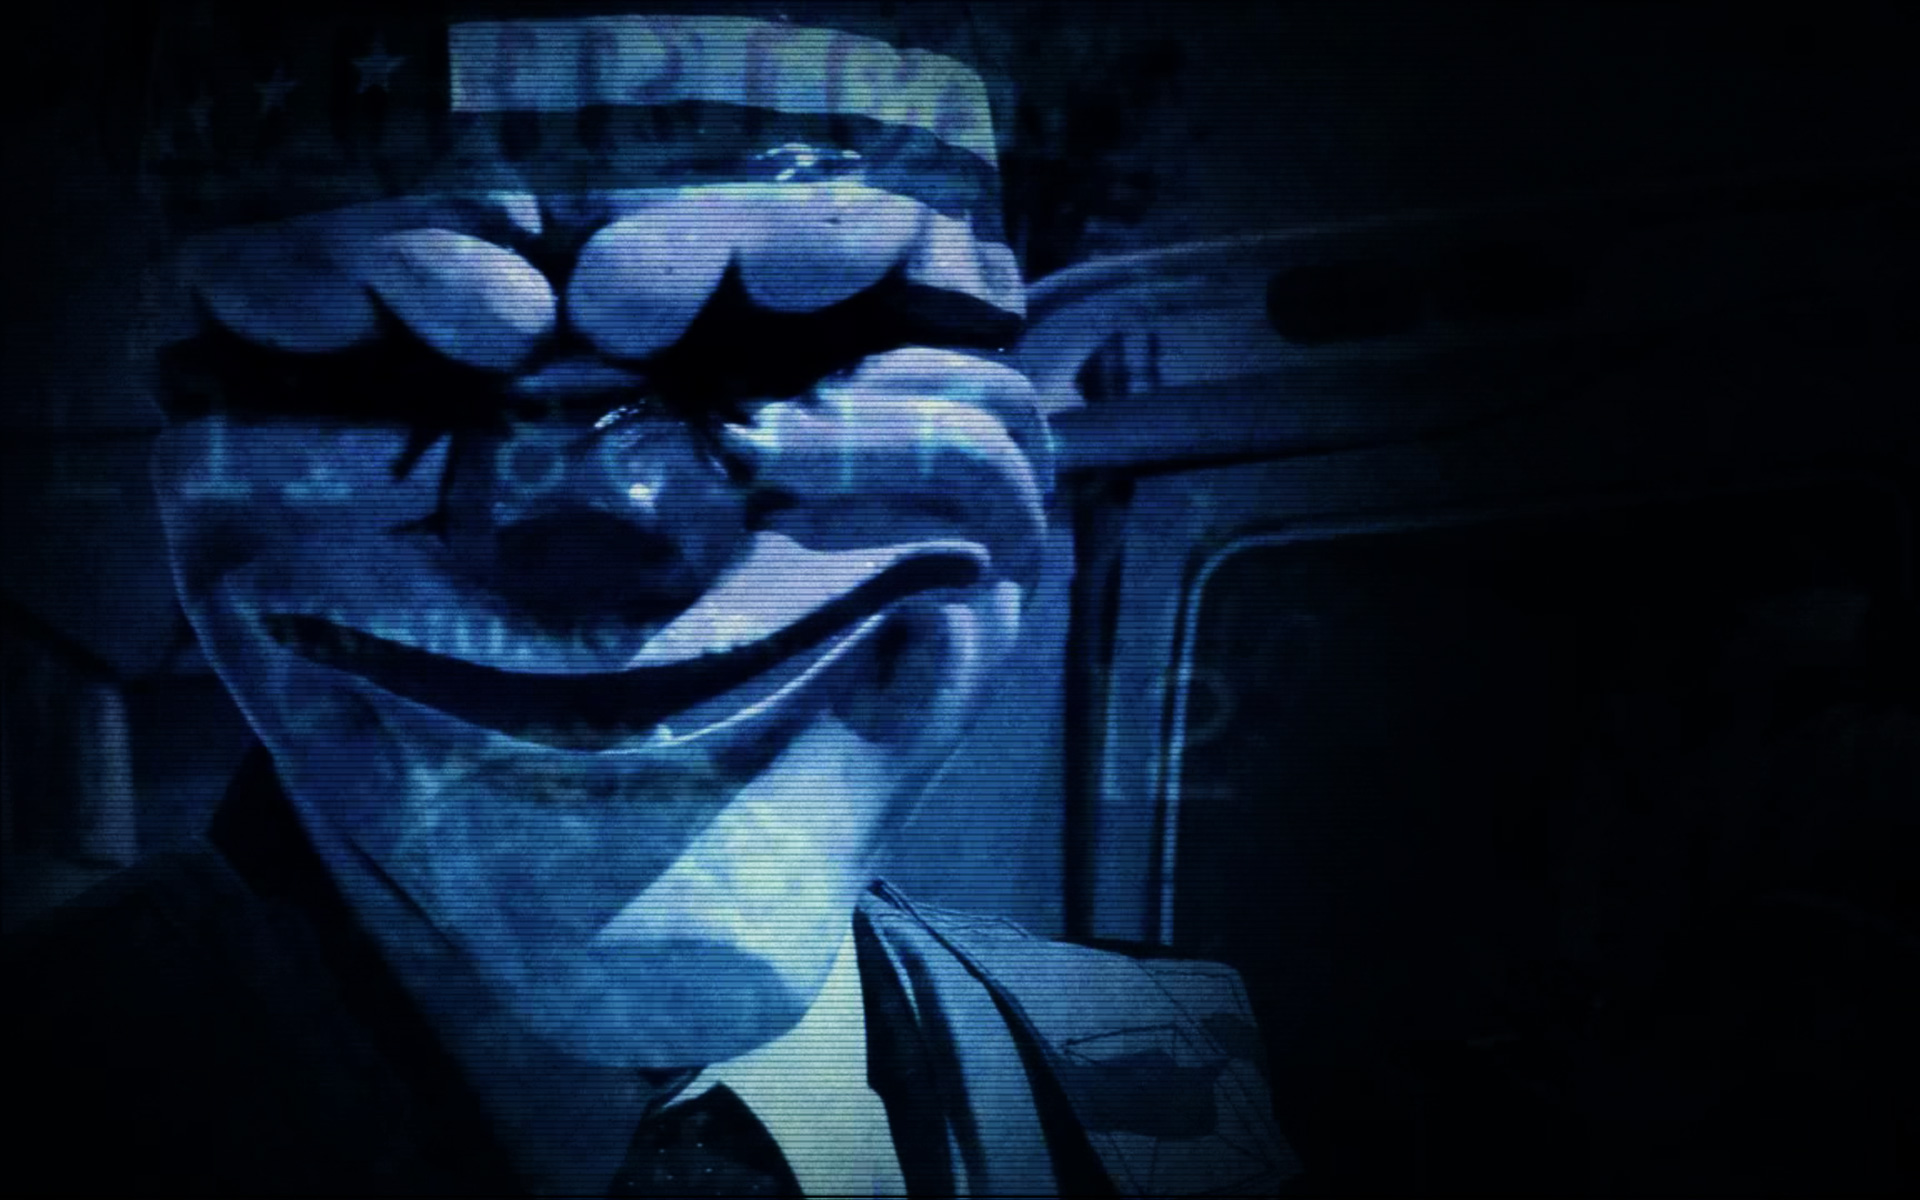 Free Payday 2 Wallpaper in 1920x1200